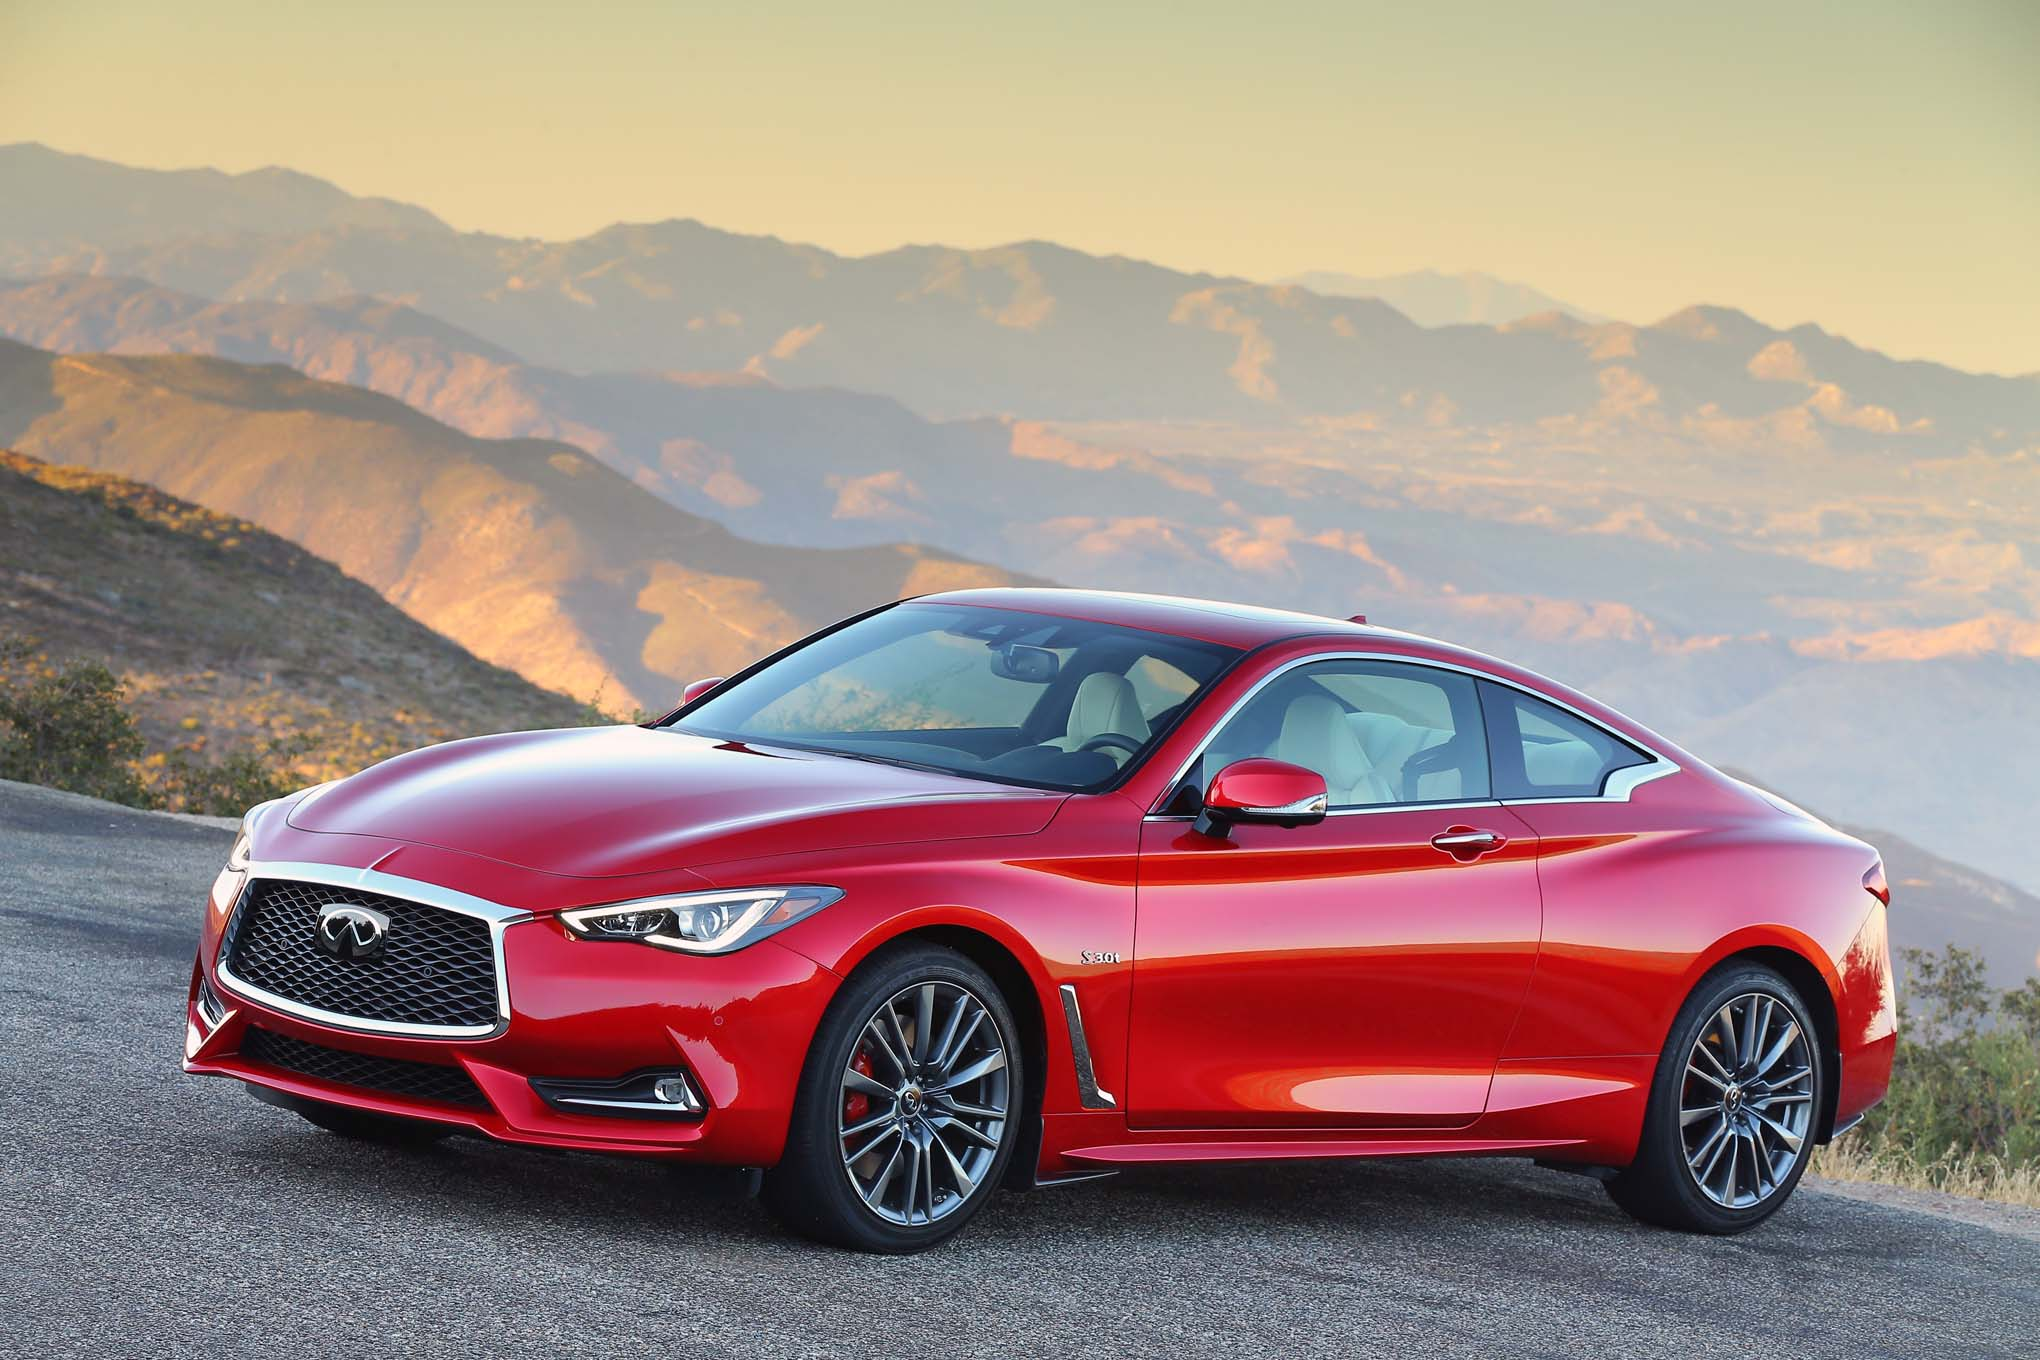 2017 Infiniti Q60 Red Sport 400 First Drive Review Automobile Magazine